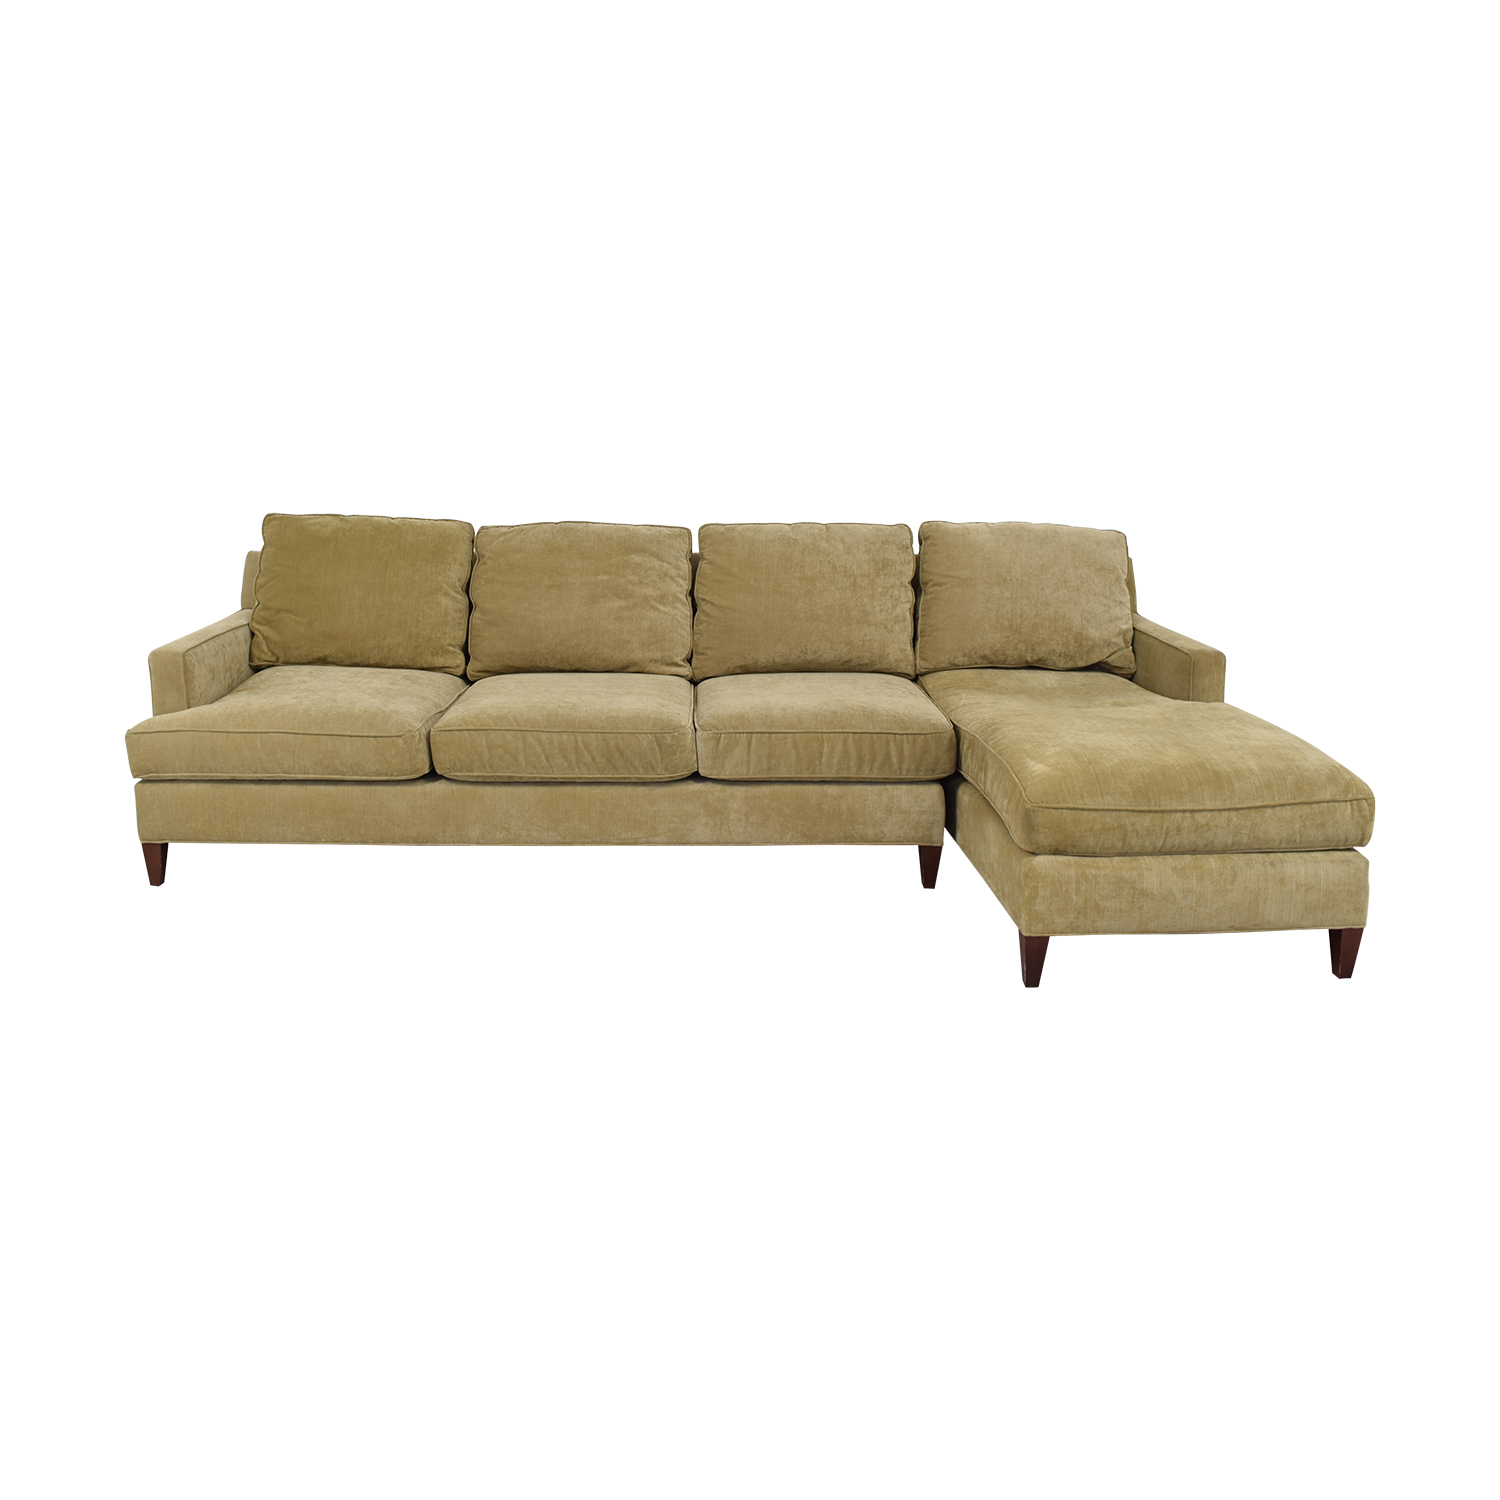 buy Mitchell Gold + Bob Williams Clifton Sectional Sofa Mitchell Gold + Bob Williams Sofas